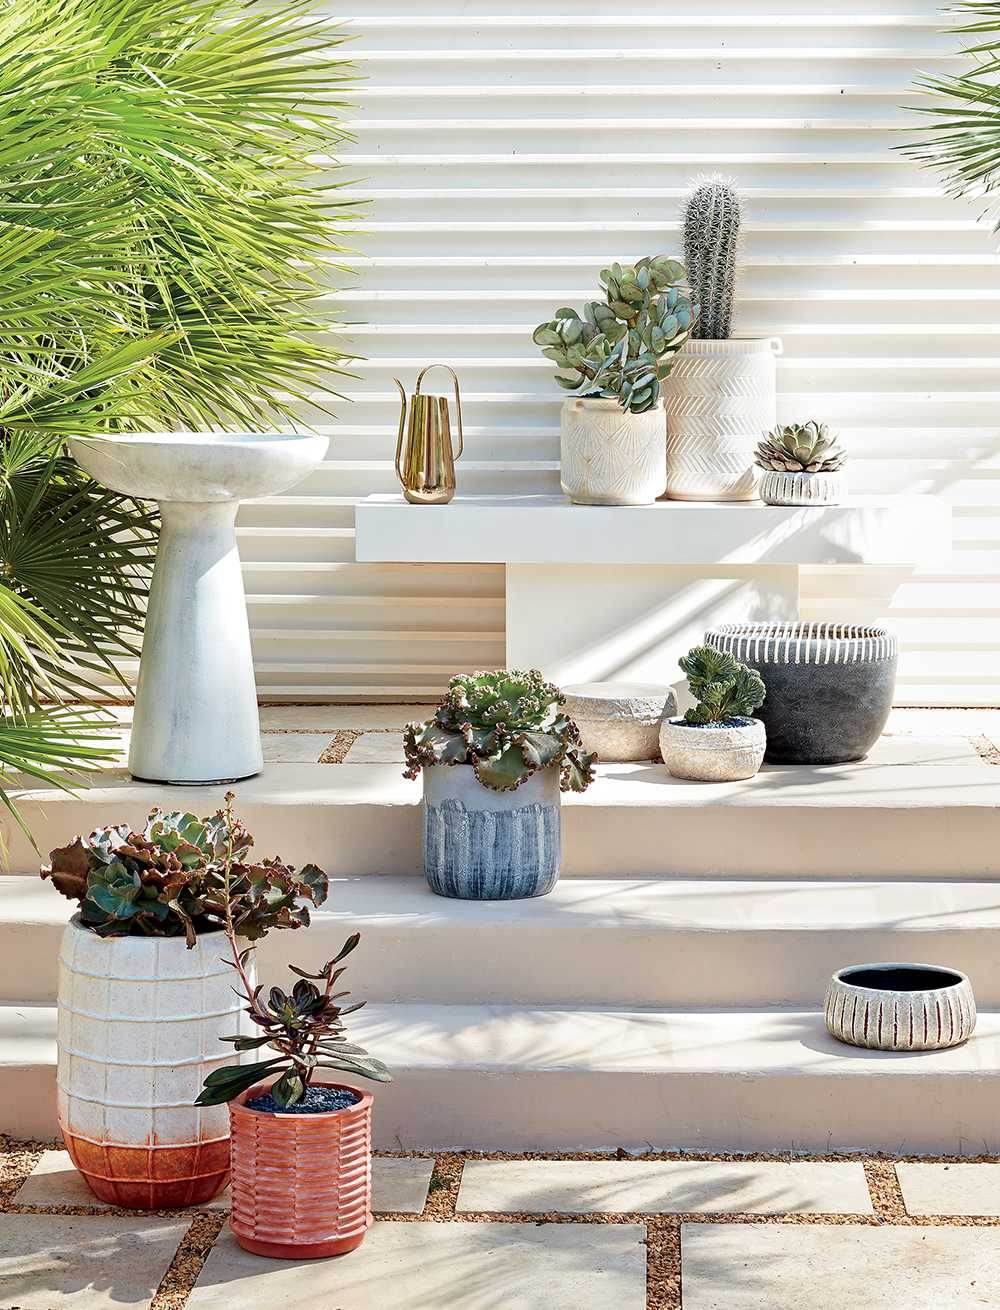 New Outdoor Planters and Accessories